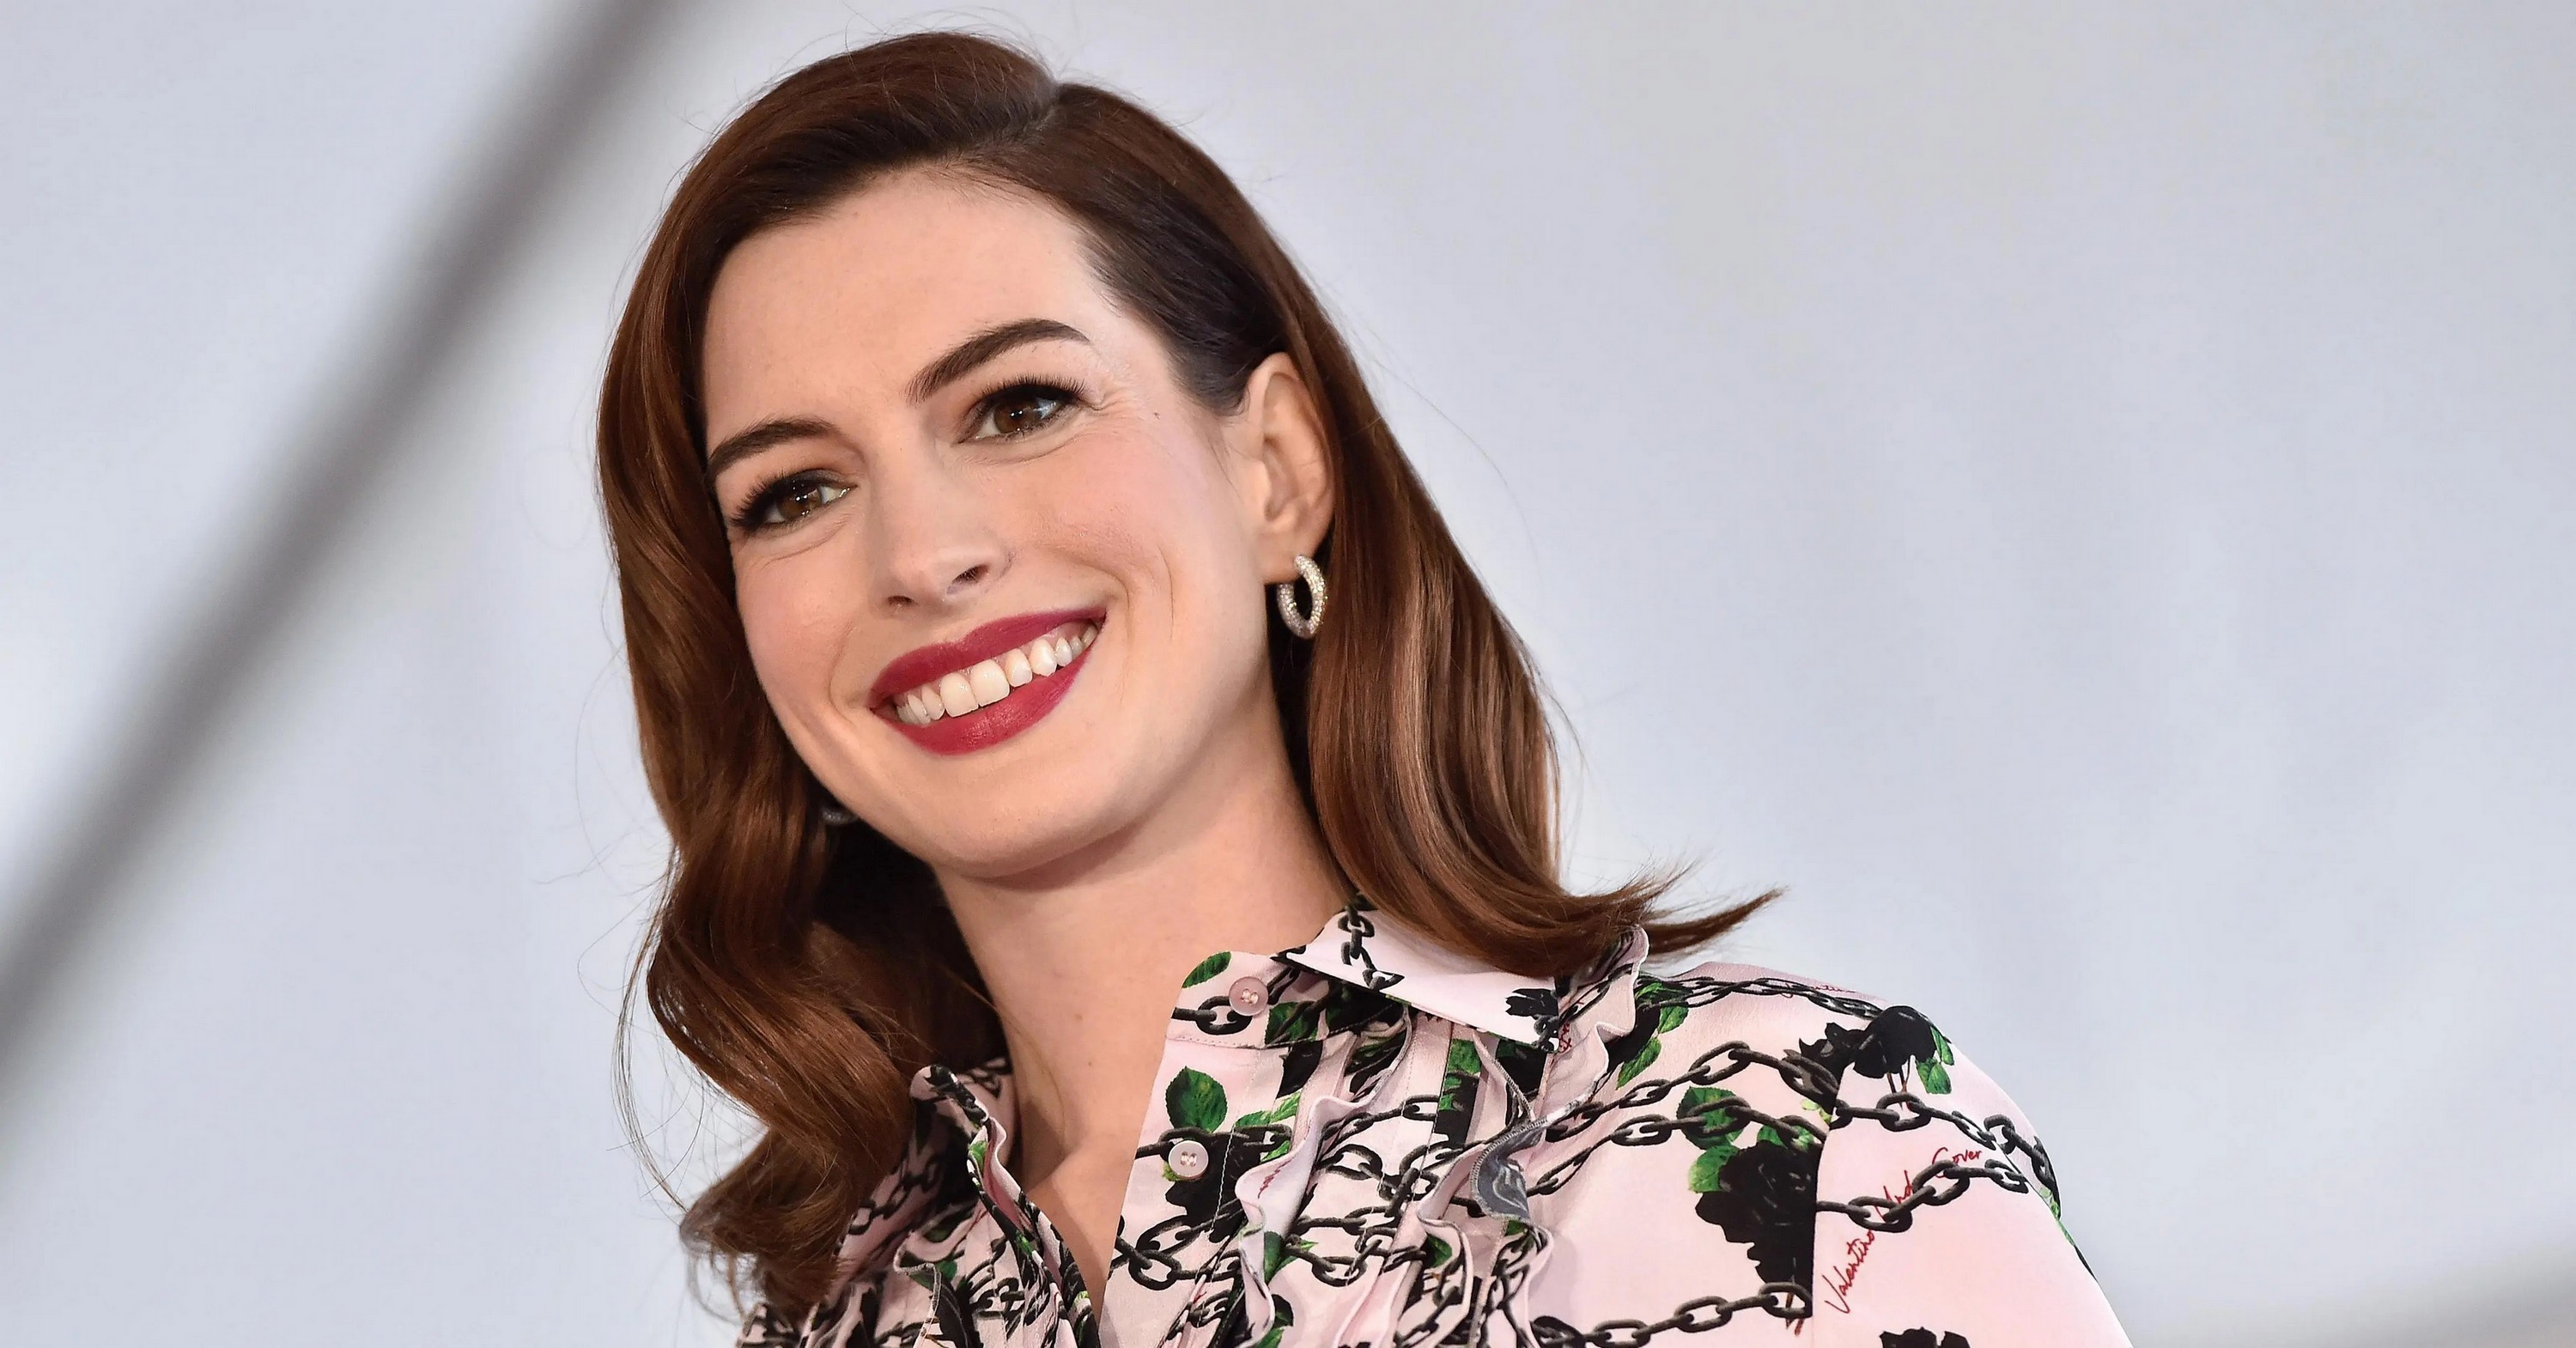 Anne Hathaway Hd Wallpaper Background Image 3000x1570